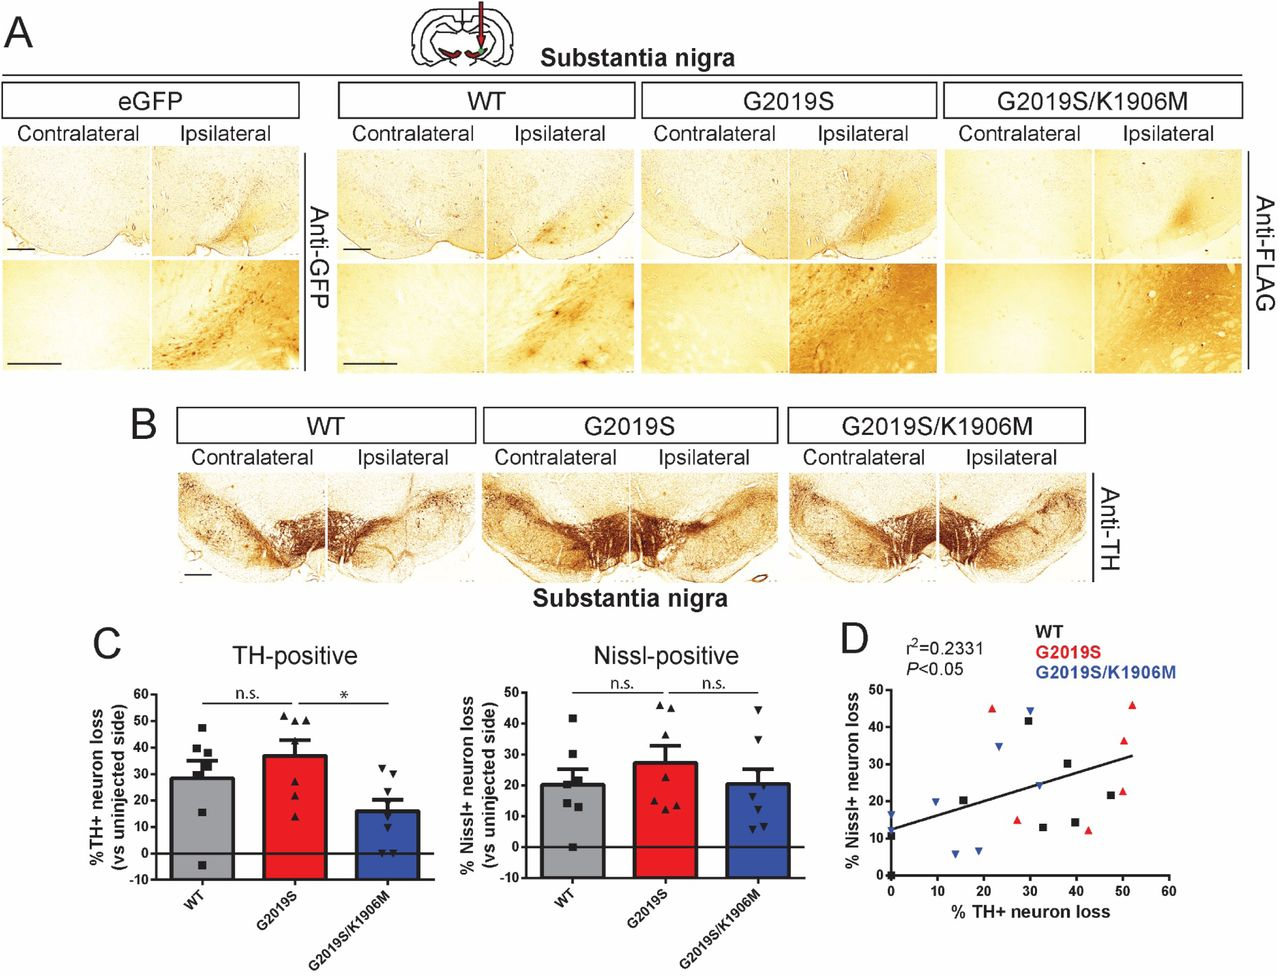 Intranigral delivery of Ad5-LRRK2-G2019S induces dopaminergic neurodegeneration in a kinase-dependent manner in adult rat brain. A) Ad5-LRRK2 (WT, G2019S or G2019S/K1906M) vectors were unilaterally delivered at a single site (1.5 x 10 10 vp/site, in 2.5 μl) in the rat substantia nigra. Immunohistochemistry reveals expression of eGFP (anti-GFP antibody) or human LRRK2 variants (anti-FLAG antibody) that persists up to 21 days post-injection. Images indicate low and high magnification for each vector. Scale bars: 500 μm. B) Immunohistochemistry revealing dopaminergic neurons (anti-TH antibody) in contralateral and ipsilateral substantia nigra at 21 days post-delivery of Ad5 vectors. Scale bars: 500 μm. C) Unbiased stereological analysis of TH-positive dopaminergic and total Nissl-positive neuron number in the substantia nigra at 21 days post-injection. Bars represent % neuronal loss in the injected ipsilateral nigra relative to the contralateral nigra (mean ± SEM, n = 7-8 animals/vector), * P